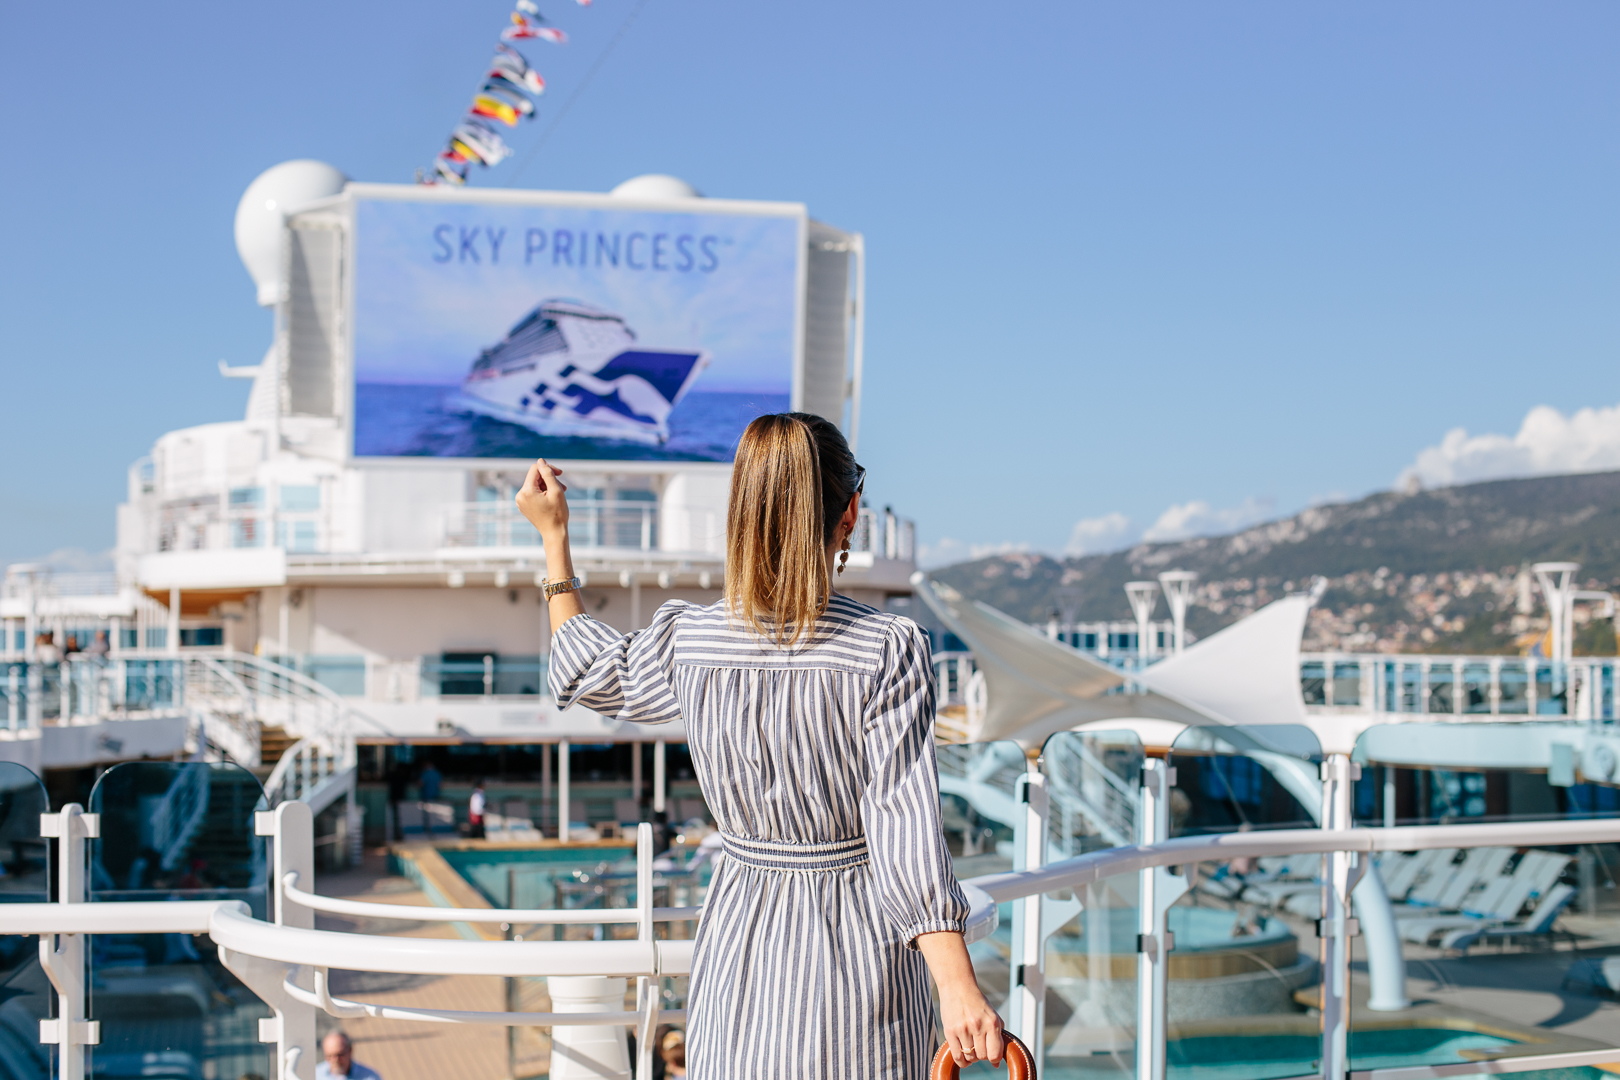 Contemporary and Chic, You'll Love The New Sky Princess